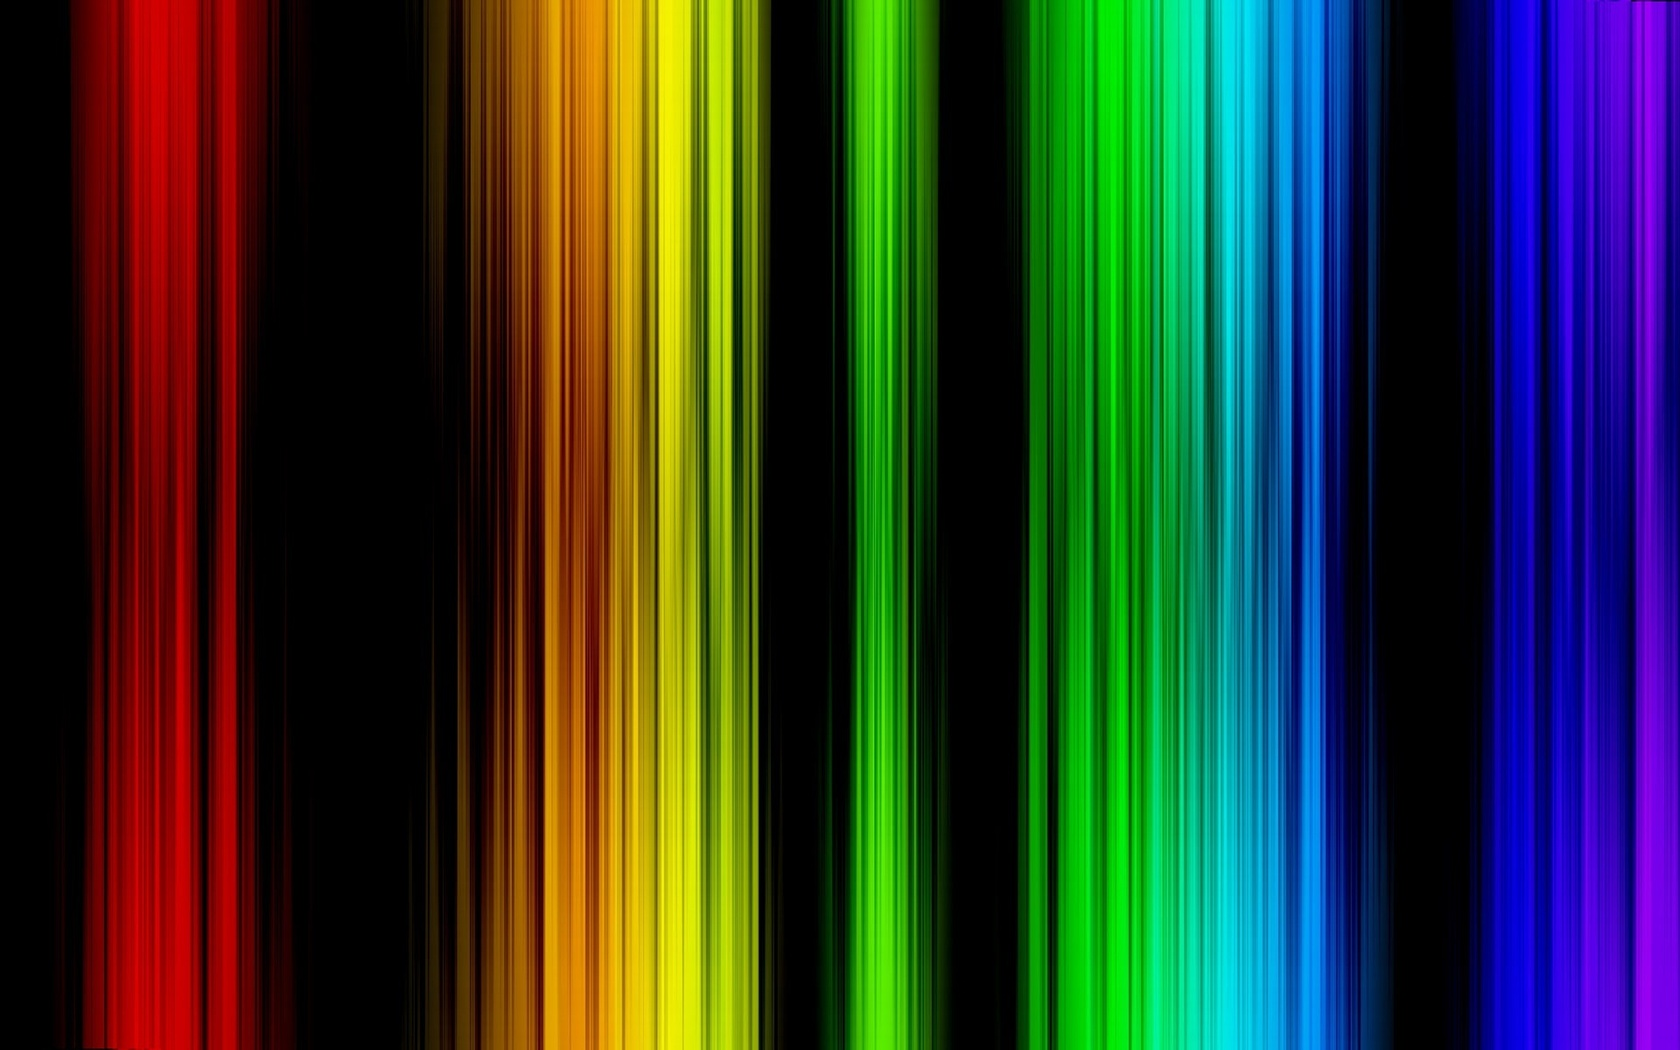 Colorful glowing lines